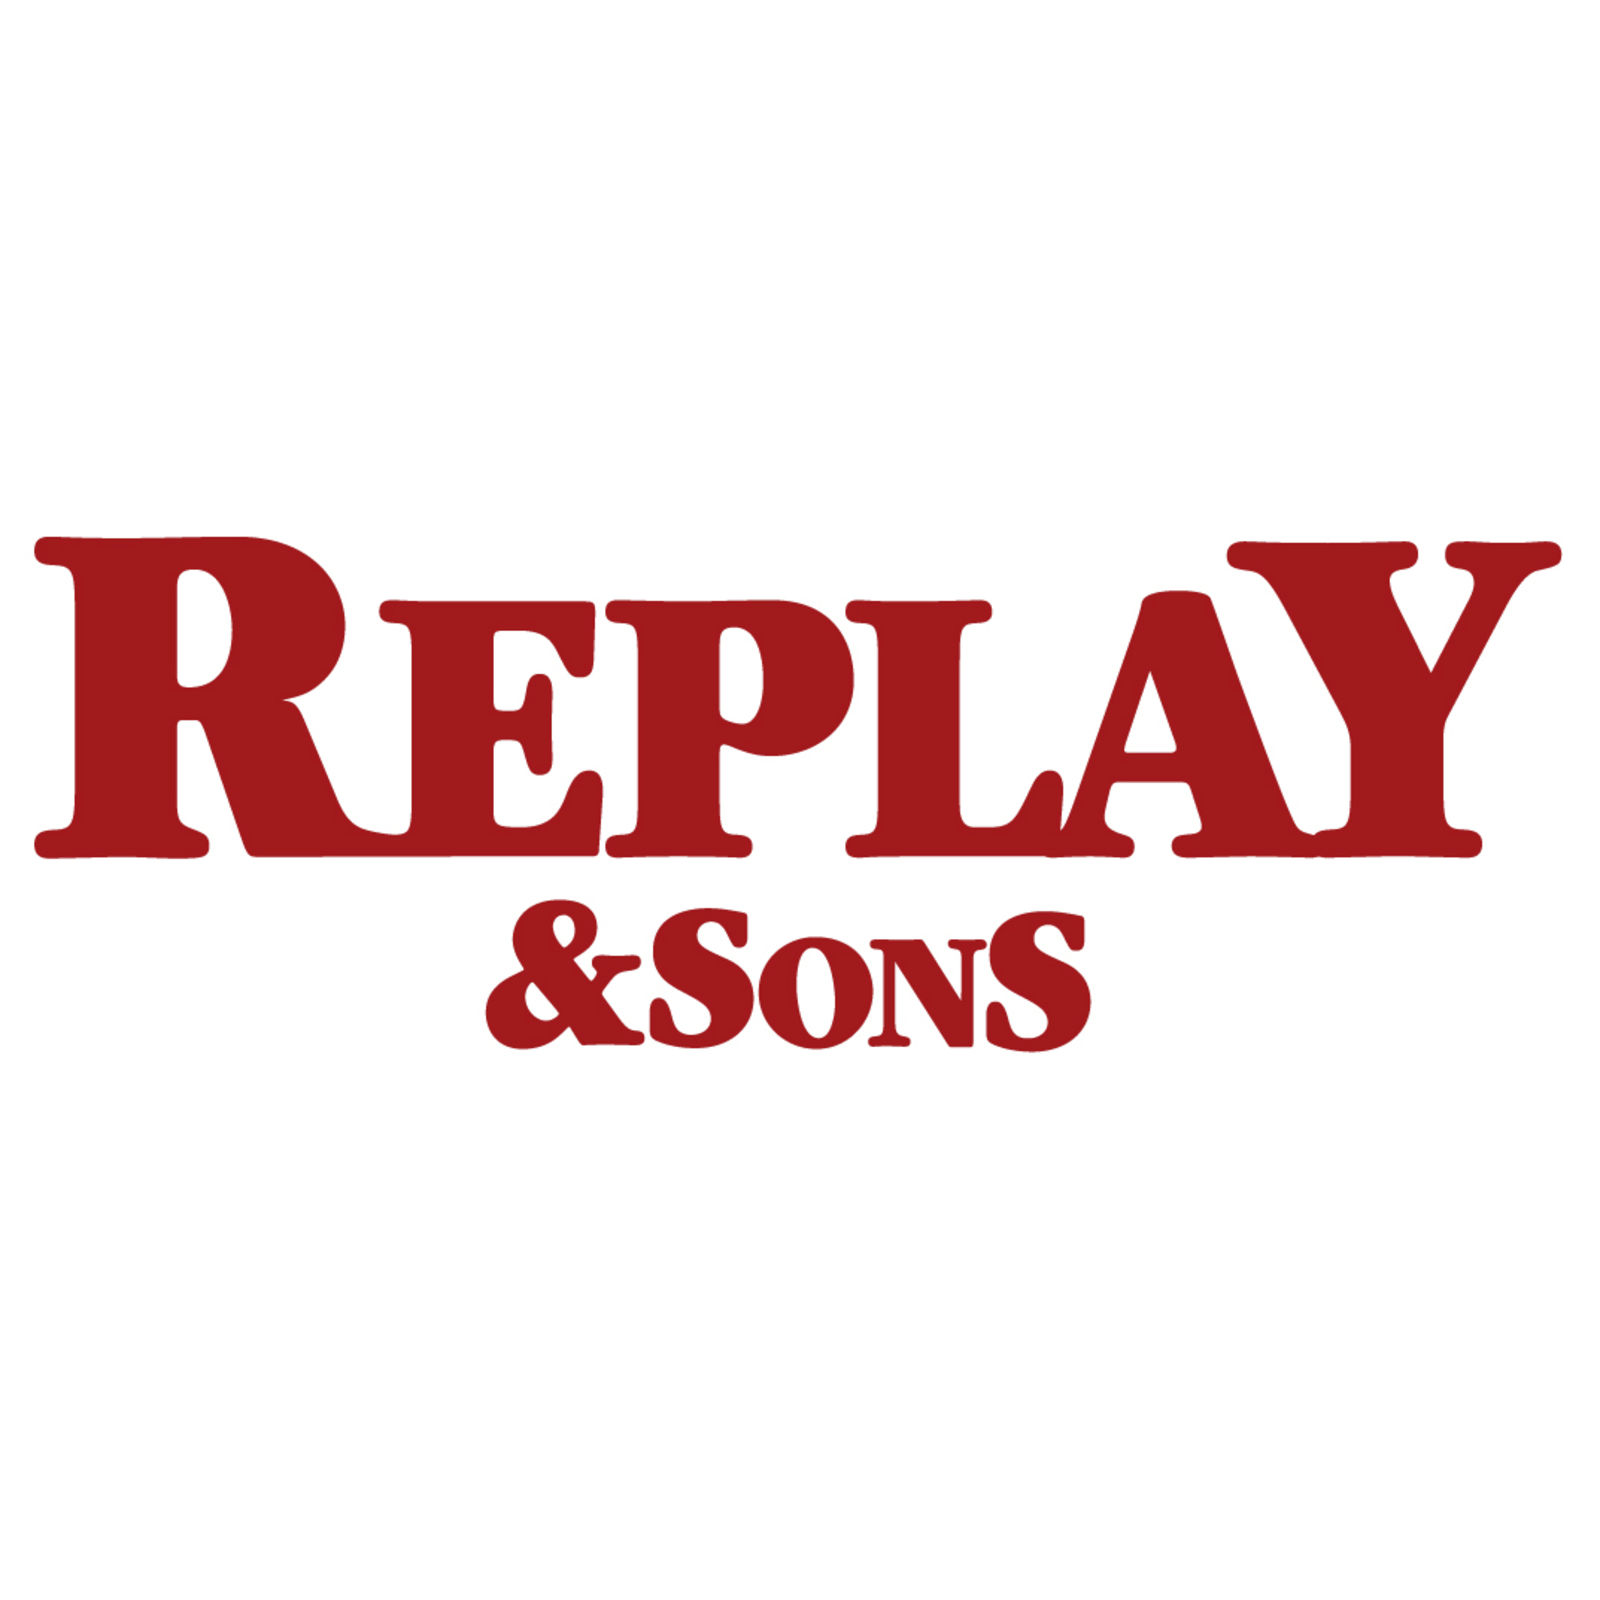 REPLAY & SONS (Image 1)